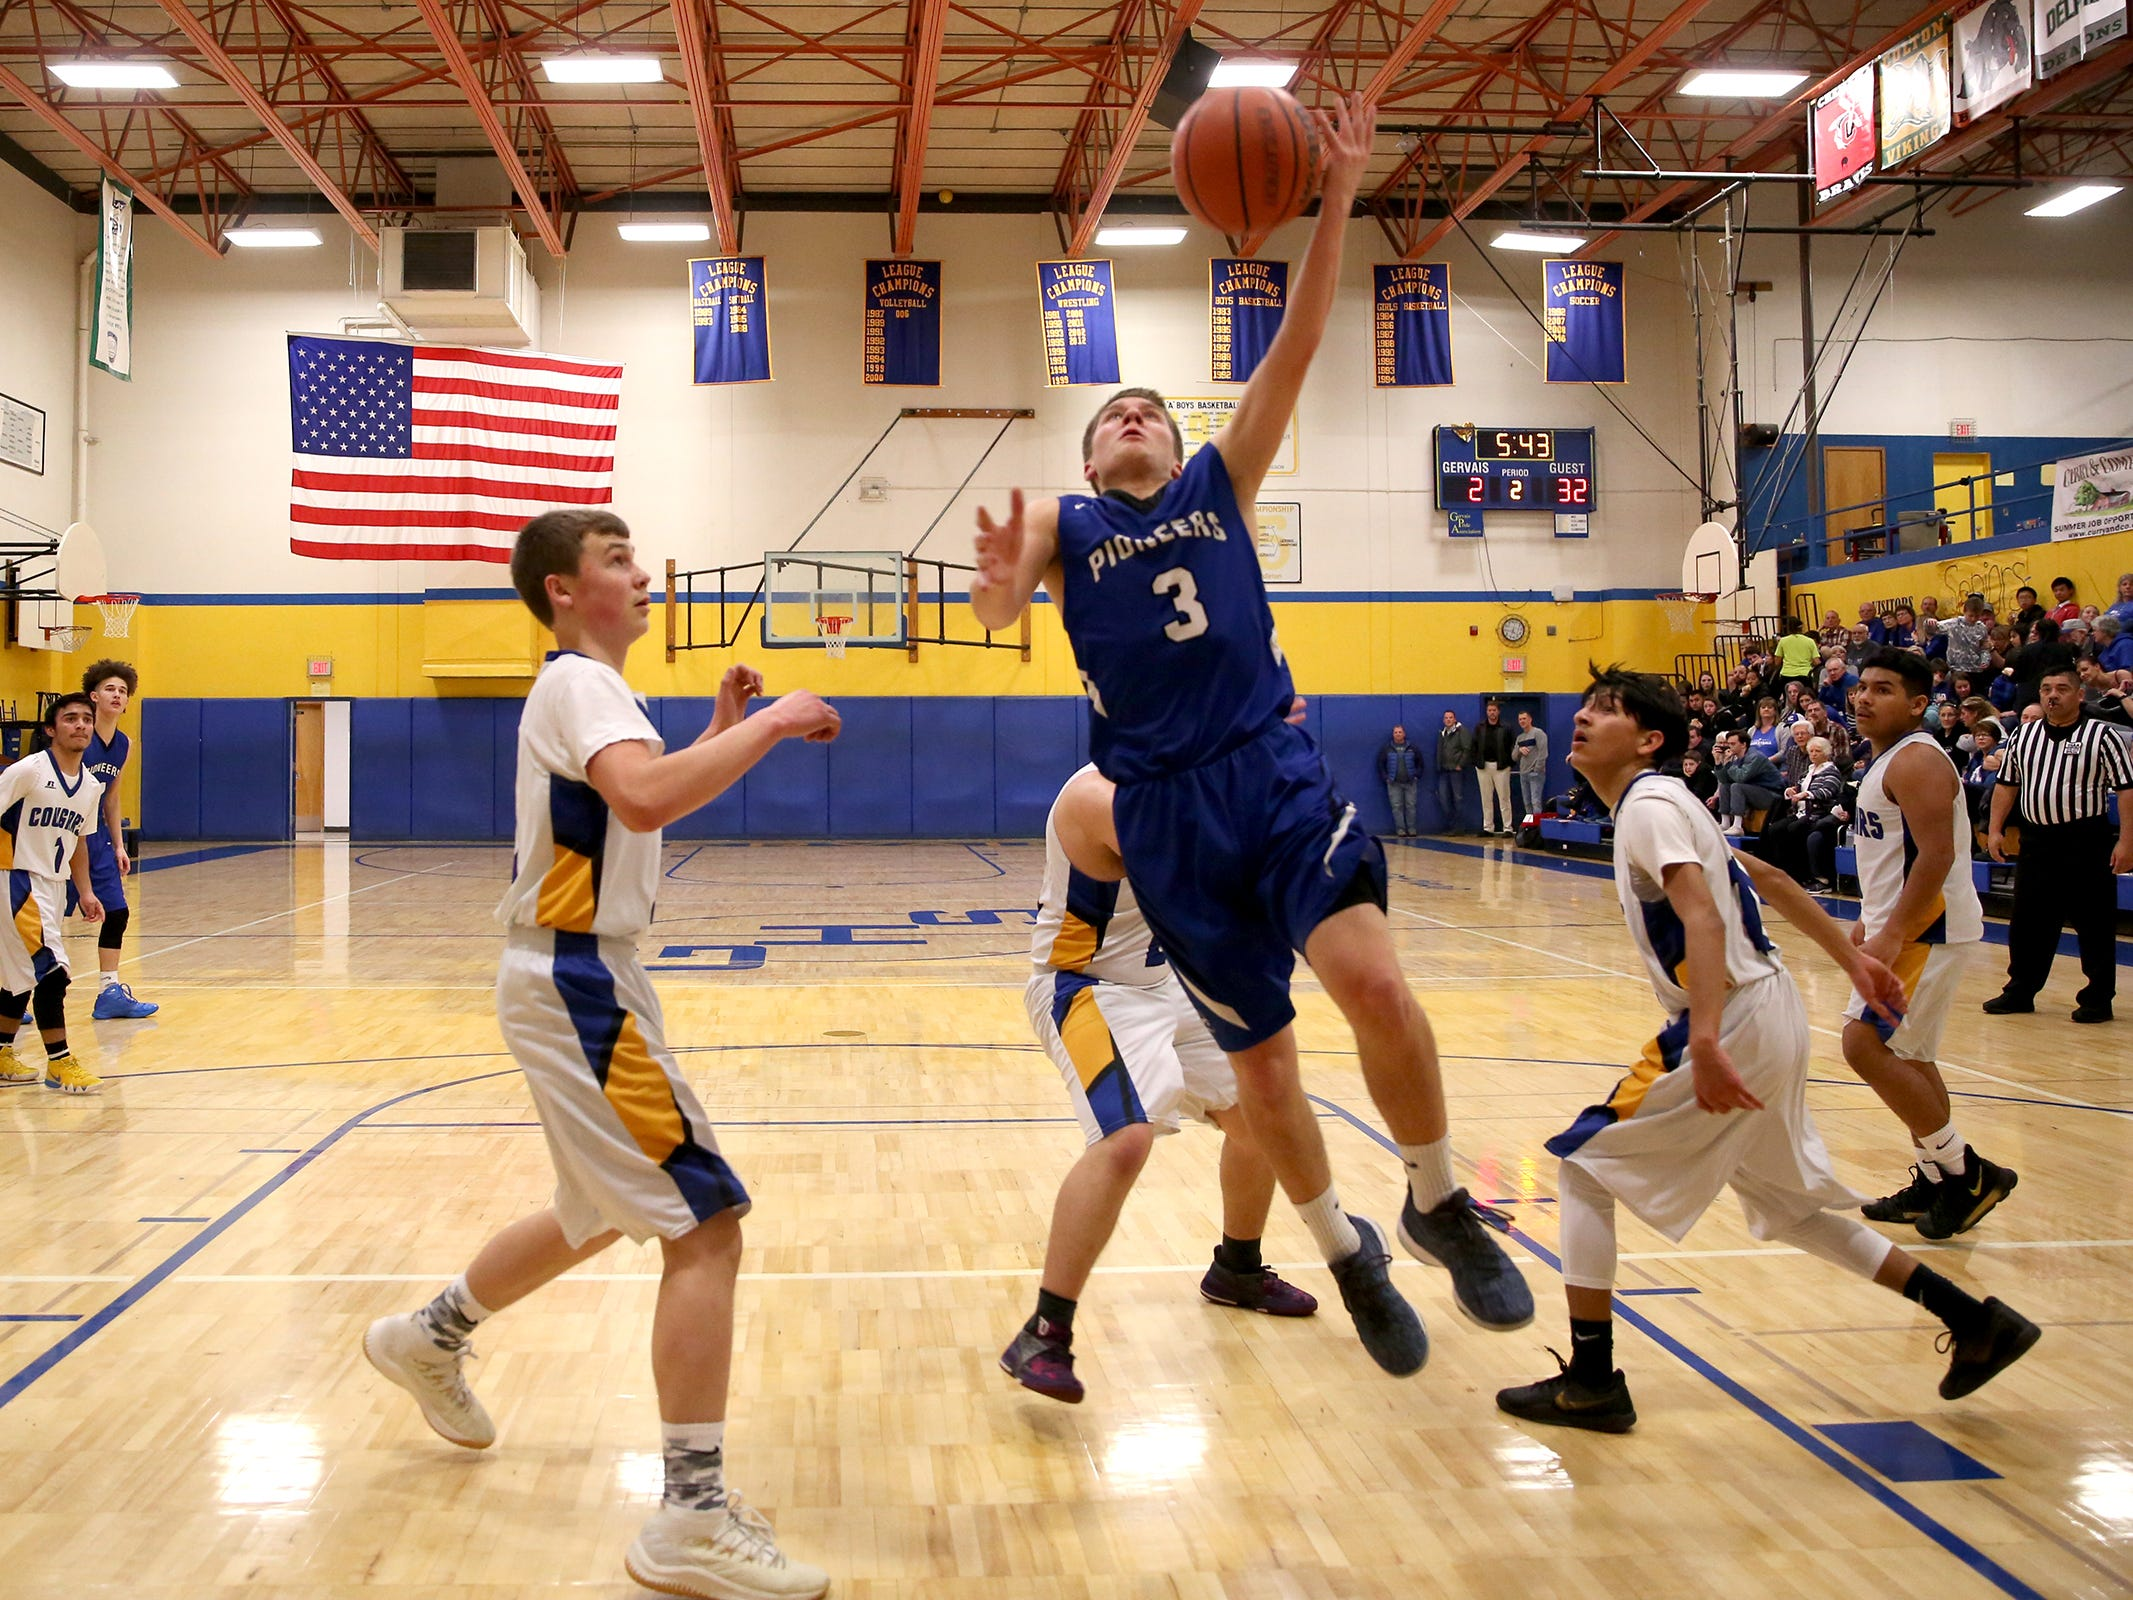 Western Christian's Jayce Roth (3) goes up in the paint during the Gervais High School boys basketball game against Western Christian in Gervais on Friday, Feb. 1, 2019.